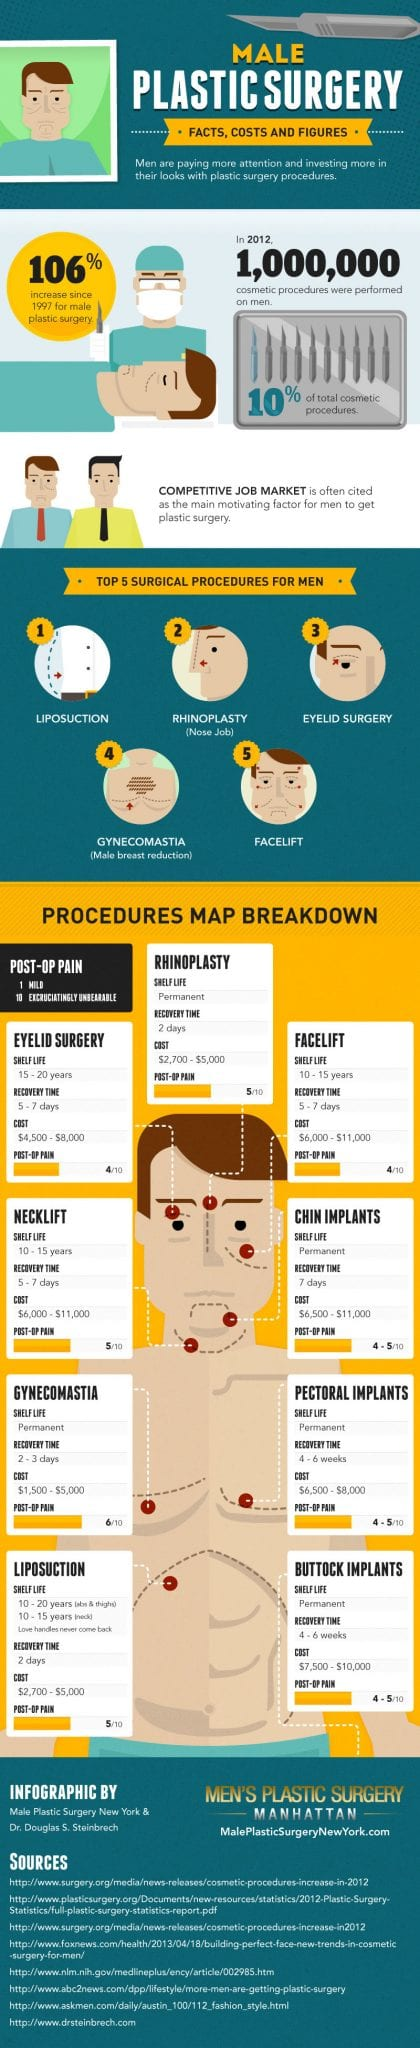 male-plastic-surgery-ny-infographic